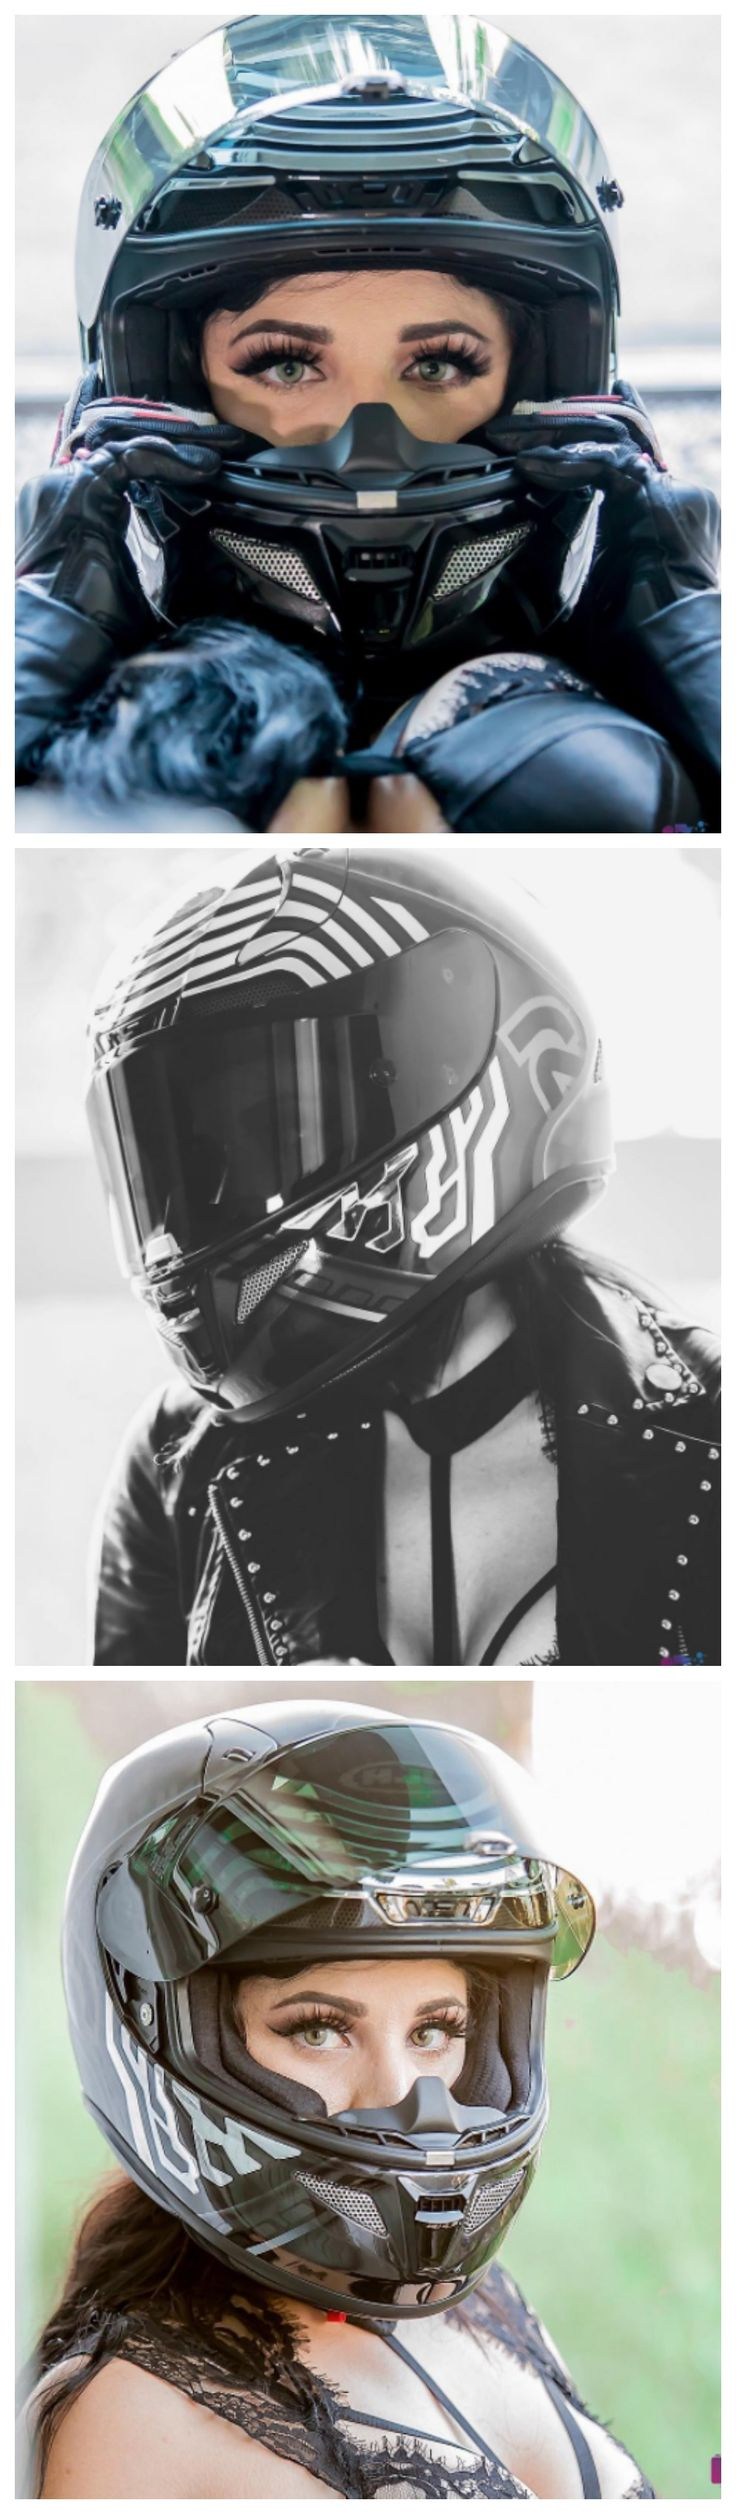 Kylo Ren Motorcycle Helmets Photo: @badbugi